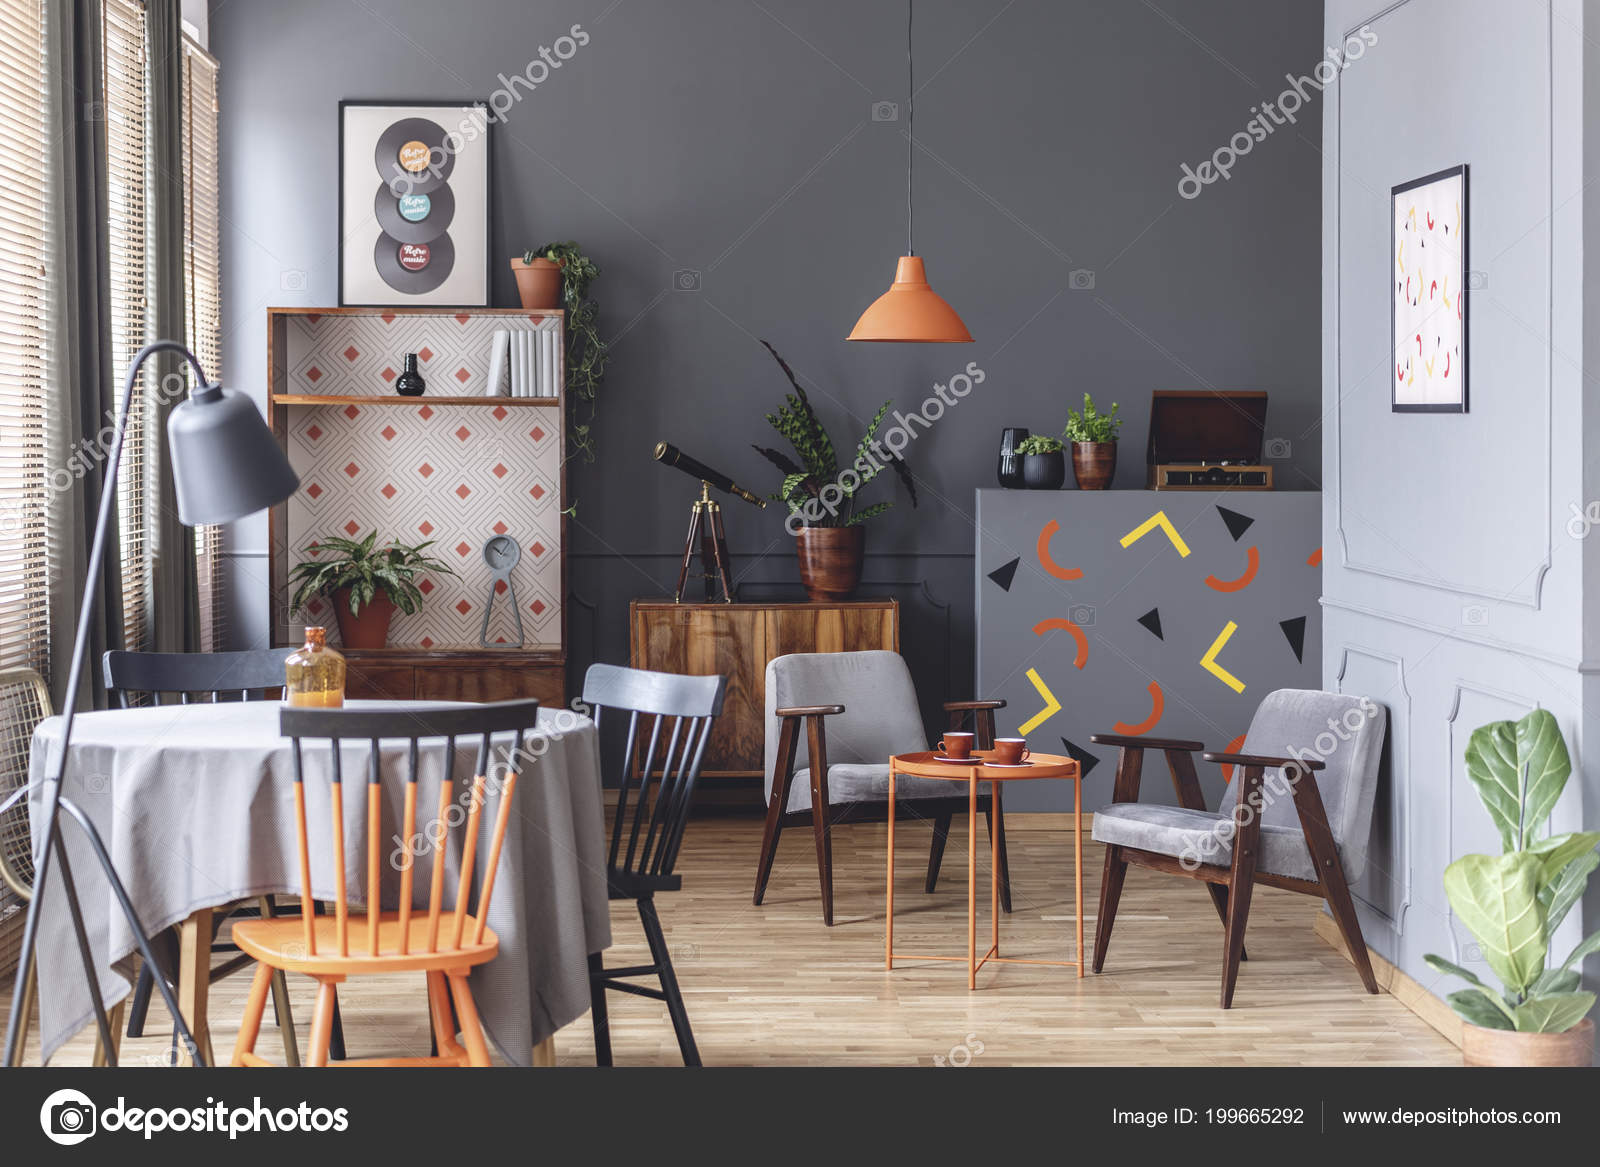 Grey Dining Room Interior With A Table Chairs Lamp Plants Sitting Corner Wooden Cabinets And Confetti On The Wall Photo By